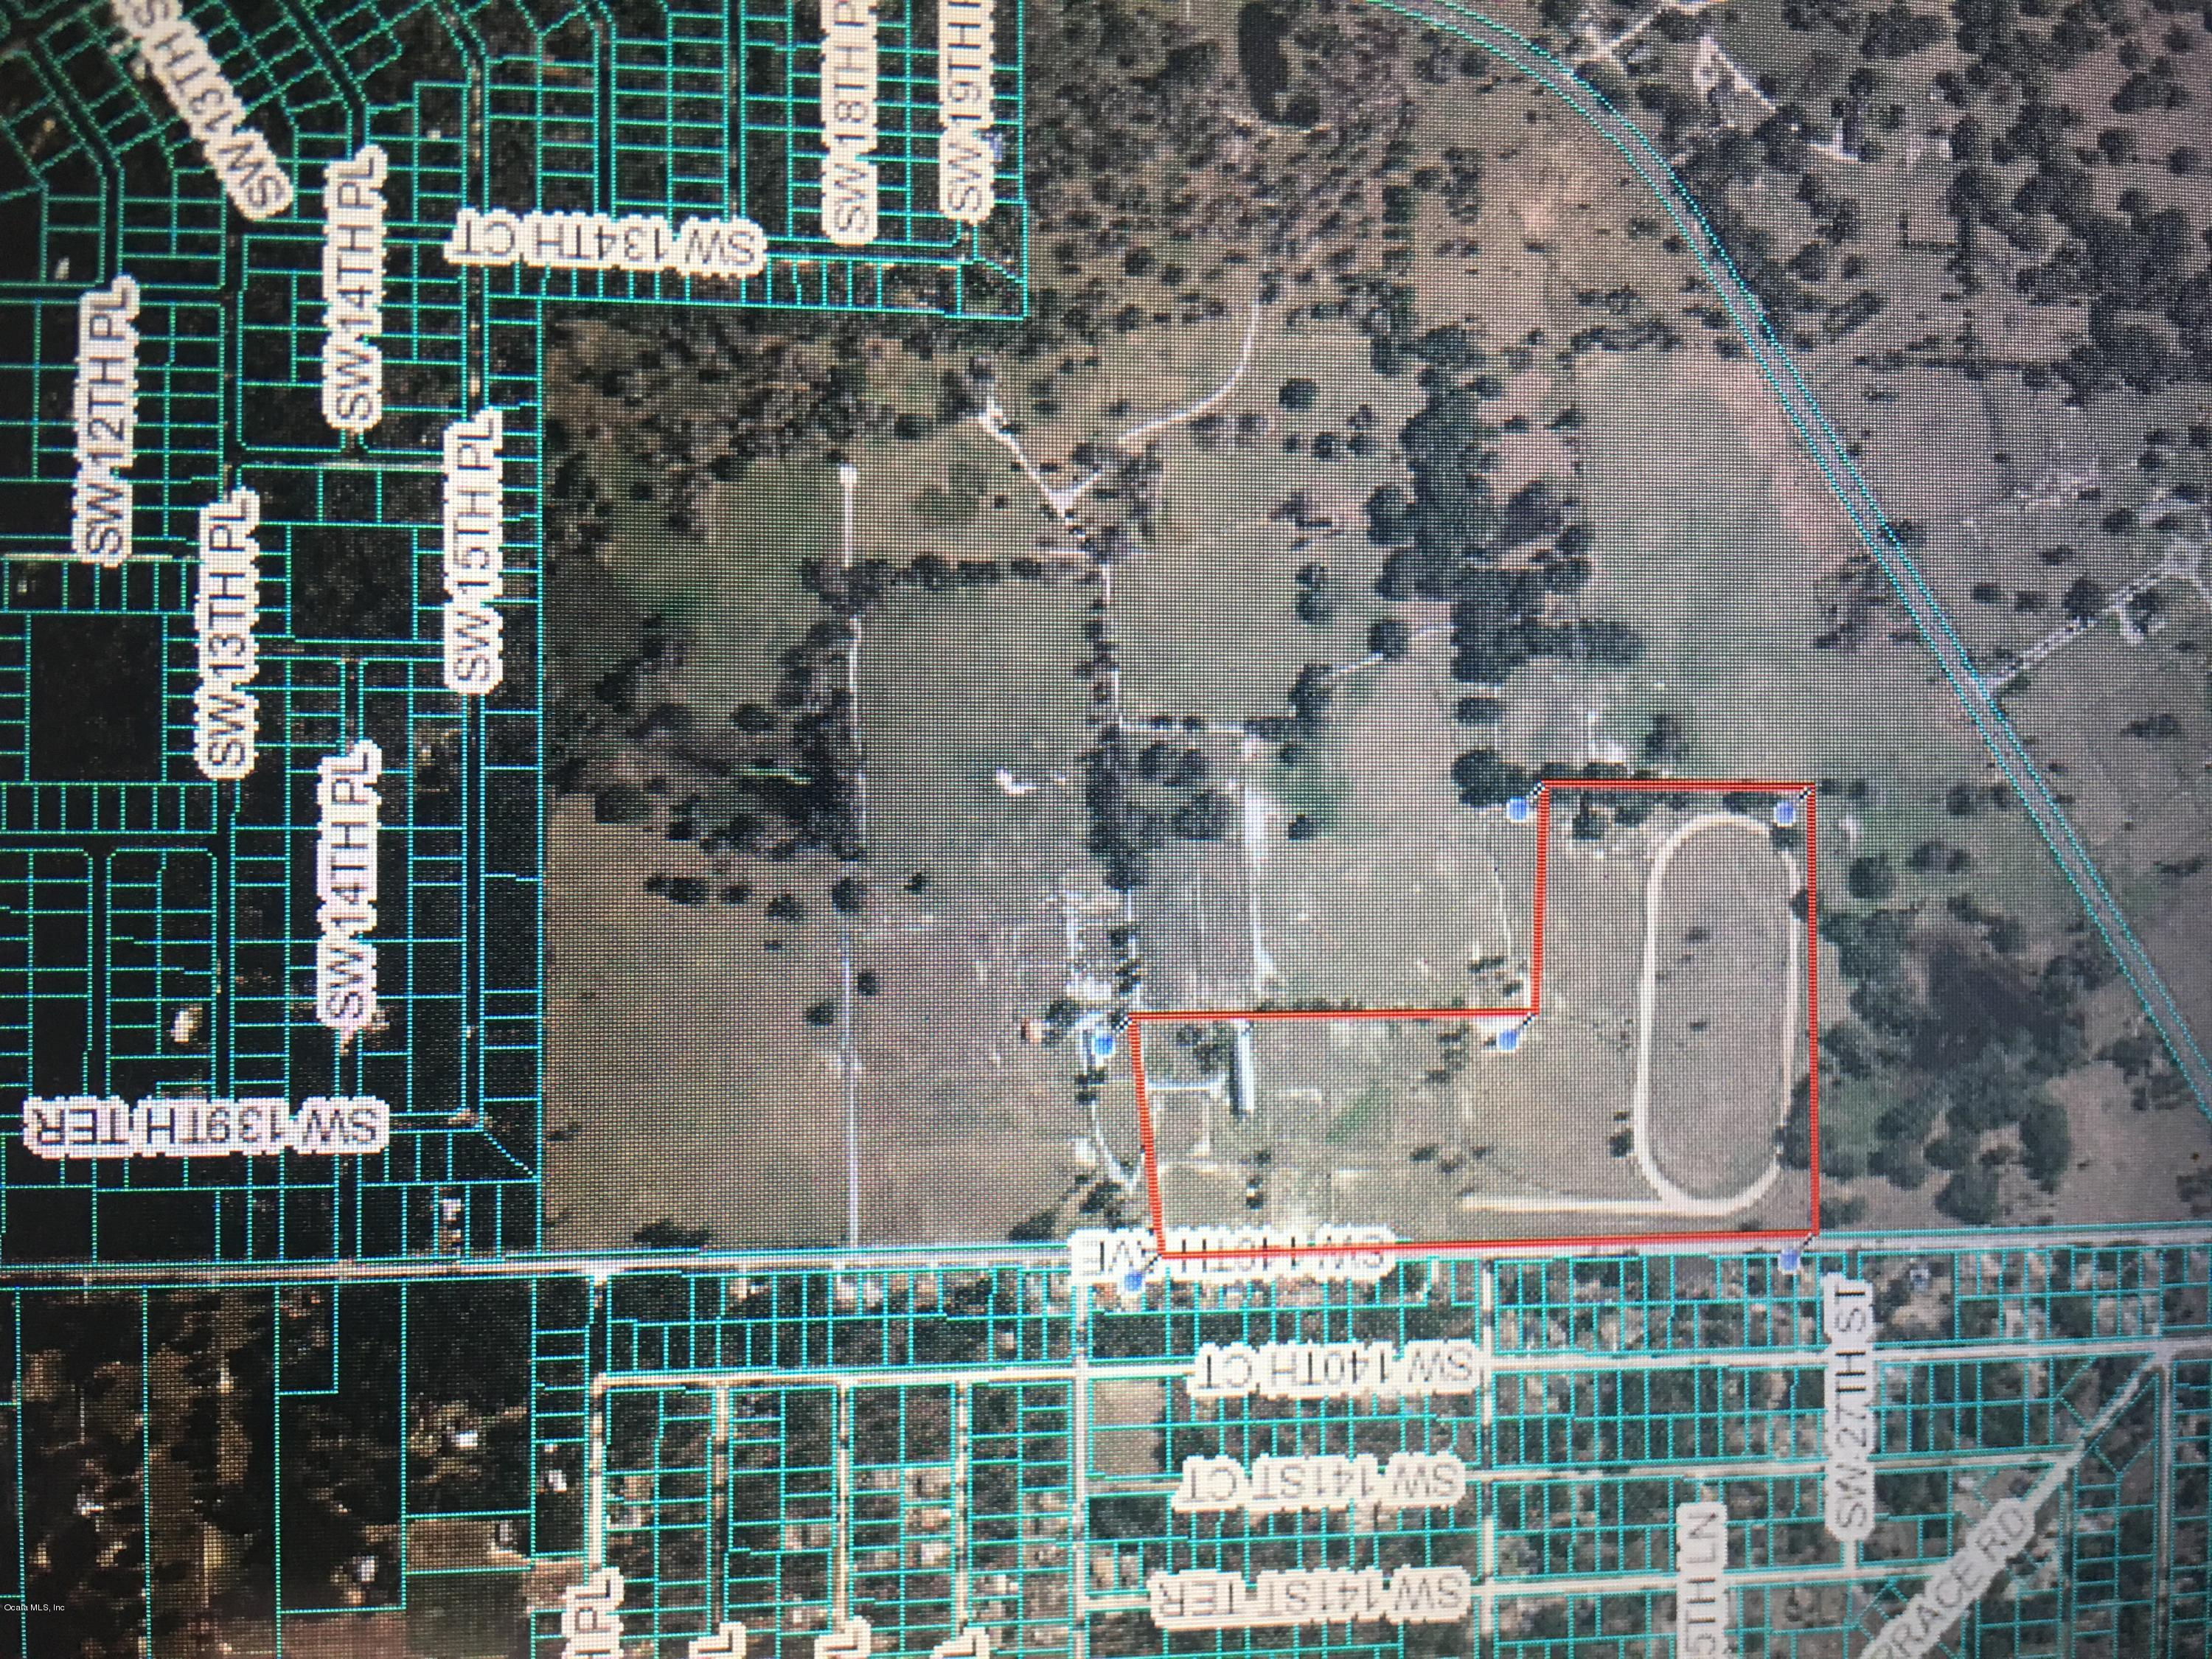 TBD W 140TH AVE, OCALA, FL 34481